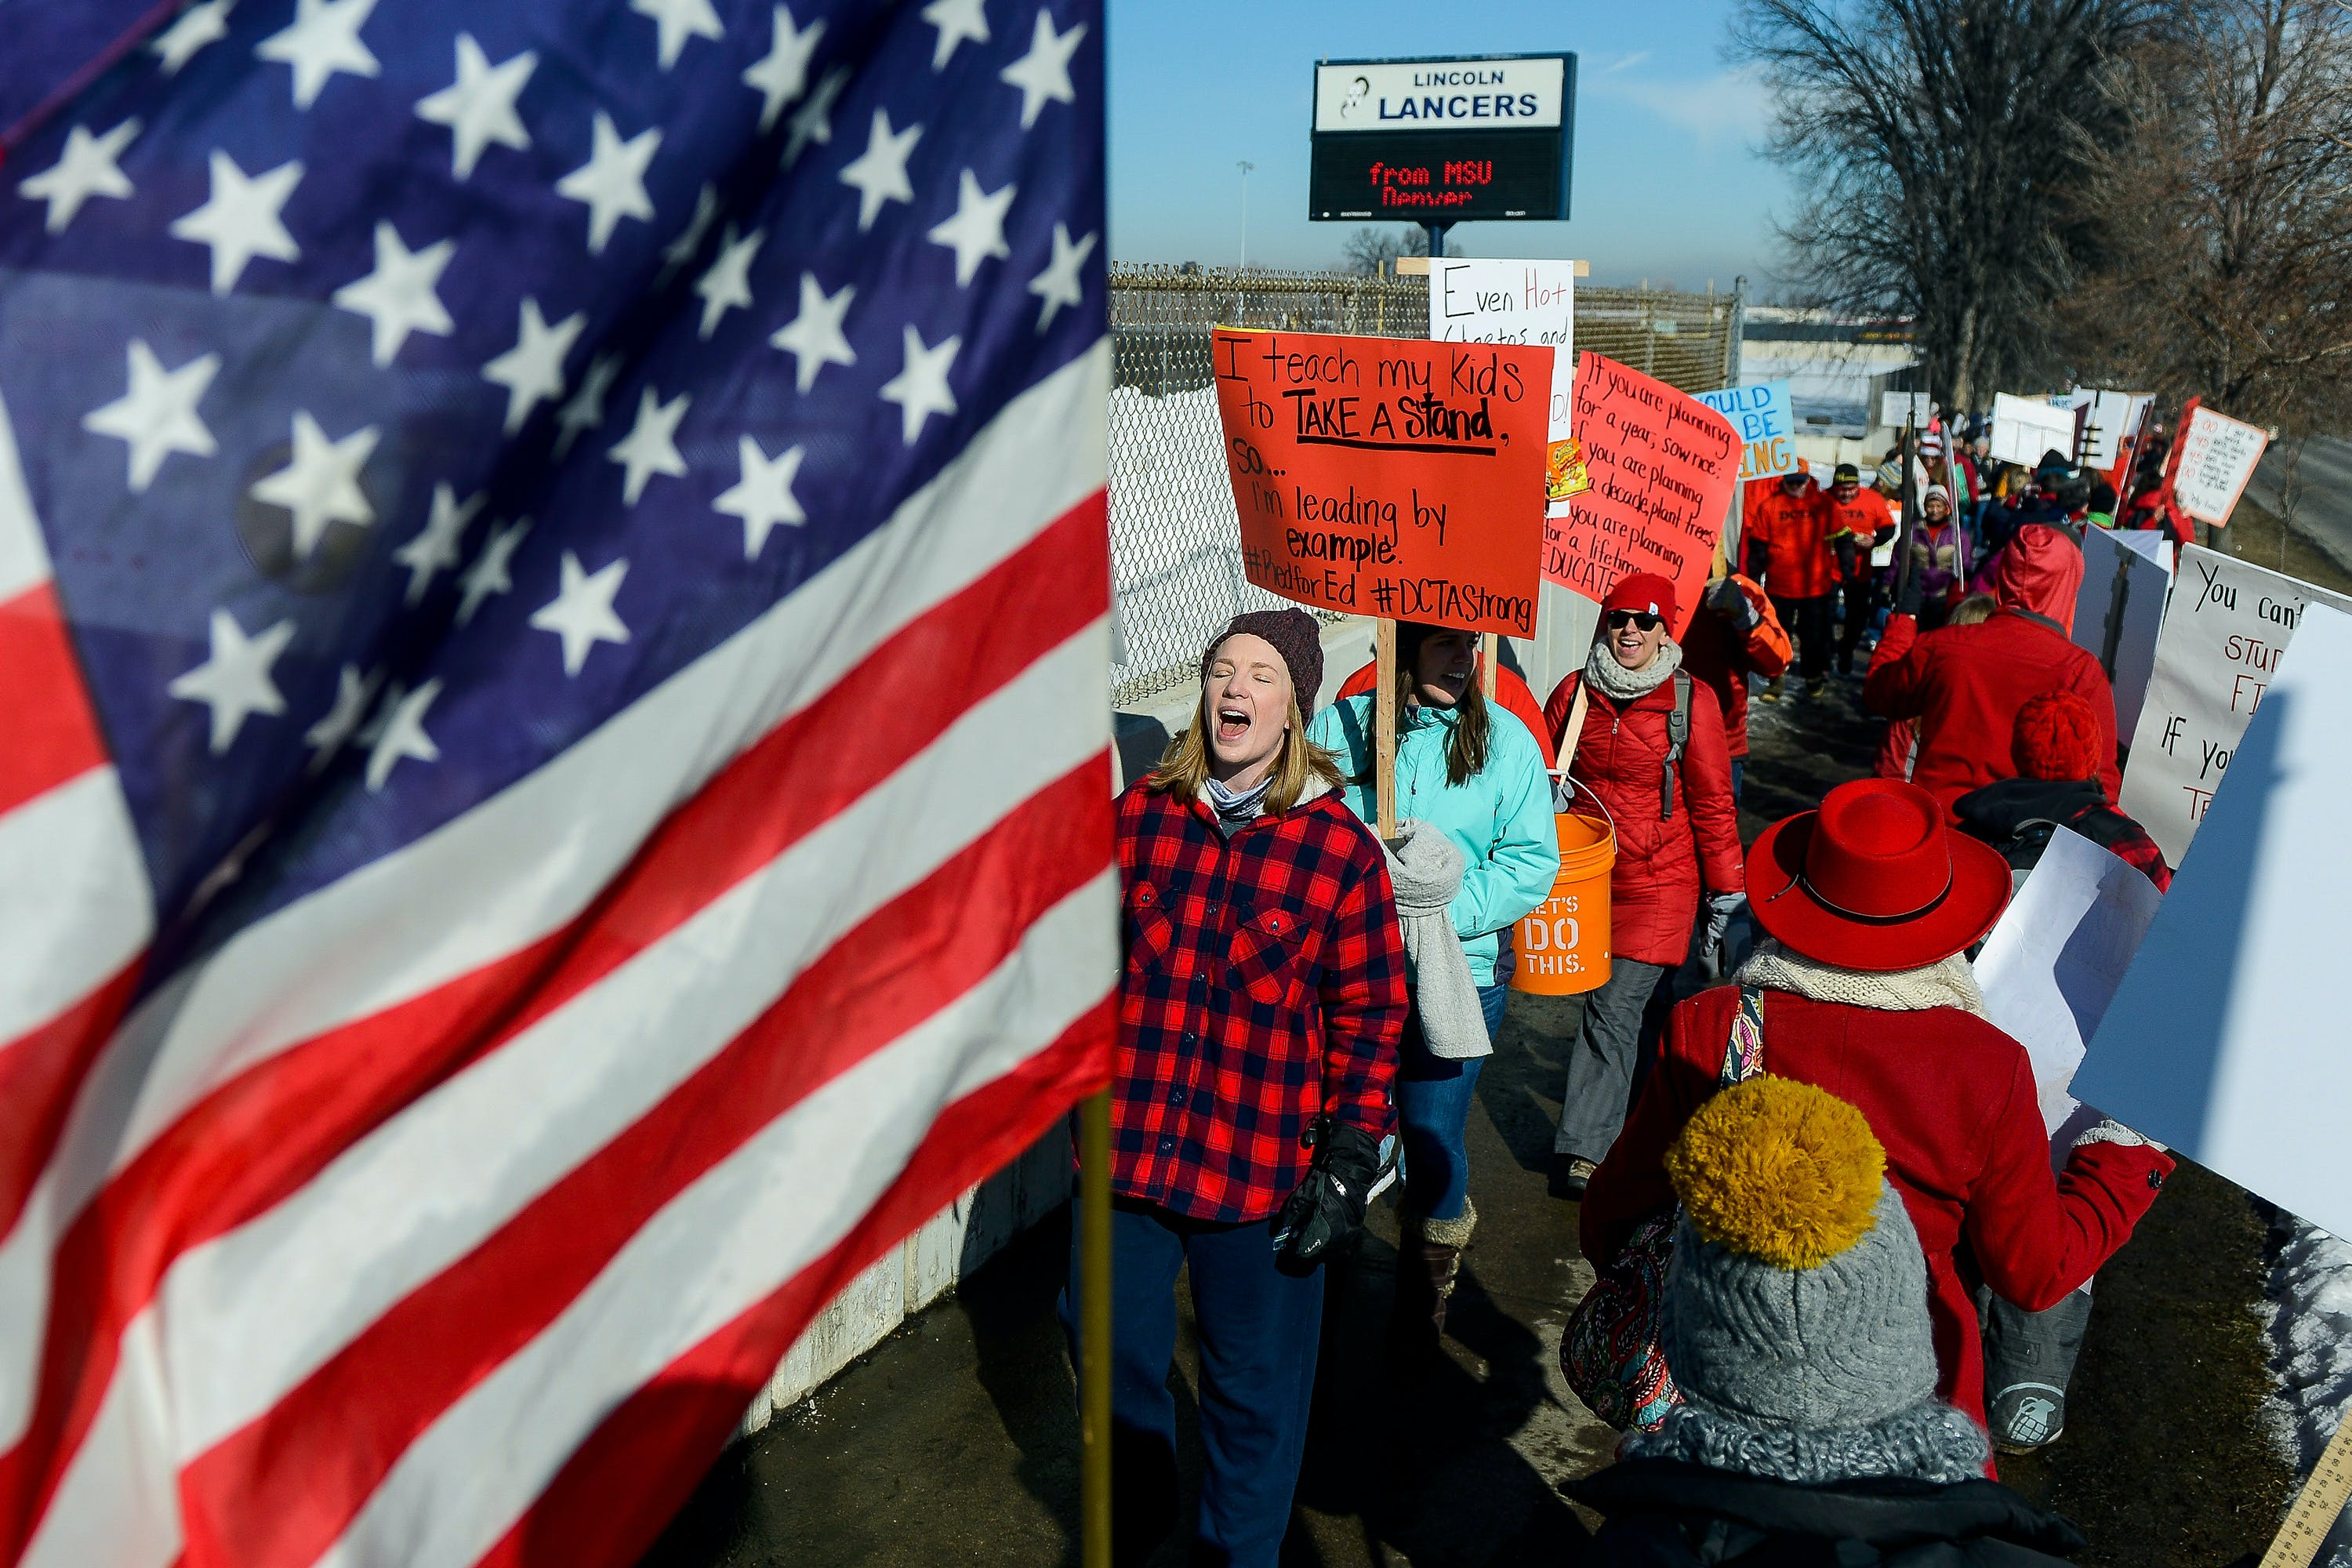 DENVER, CO - FEBRUARY 11: Denver teachers and community members picket outside Abraham Lincoln High School on February 11, 2019 in Denver, Colorado. Denver teachers are striking for the first time in 25 years after the school district and the union representing the educators failed to reach an agreement after 14 months of contract negations over teacher pay. (Photo by Michael Ciaglo/Getty Images)